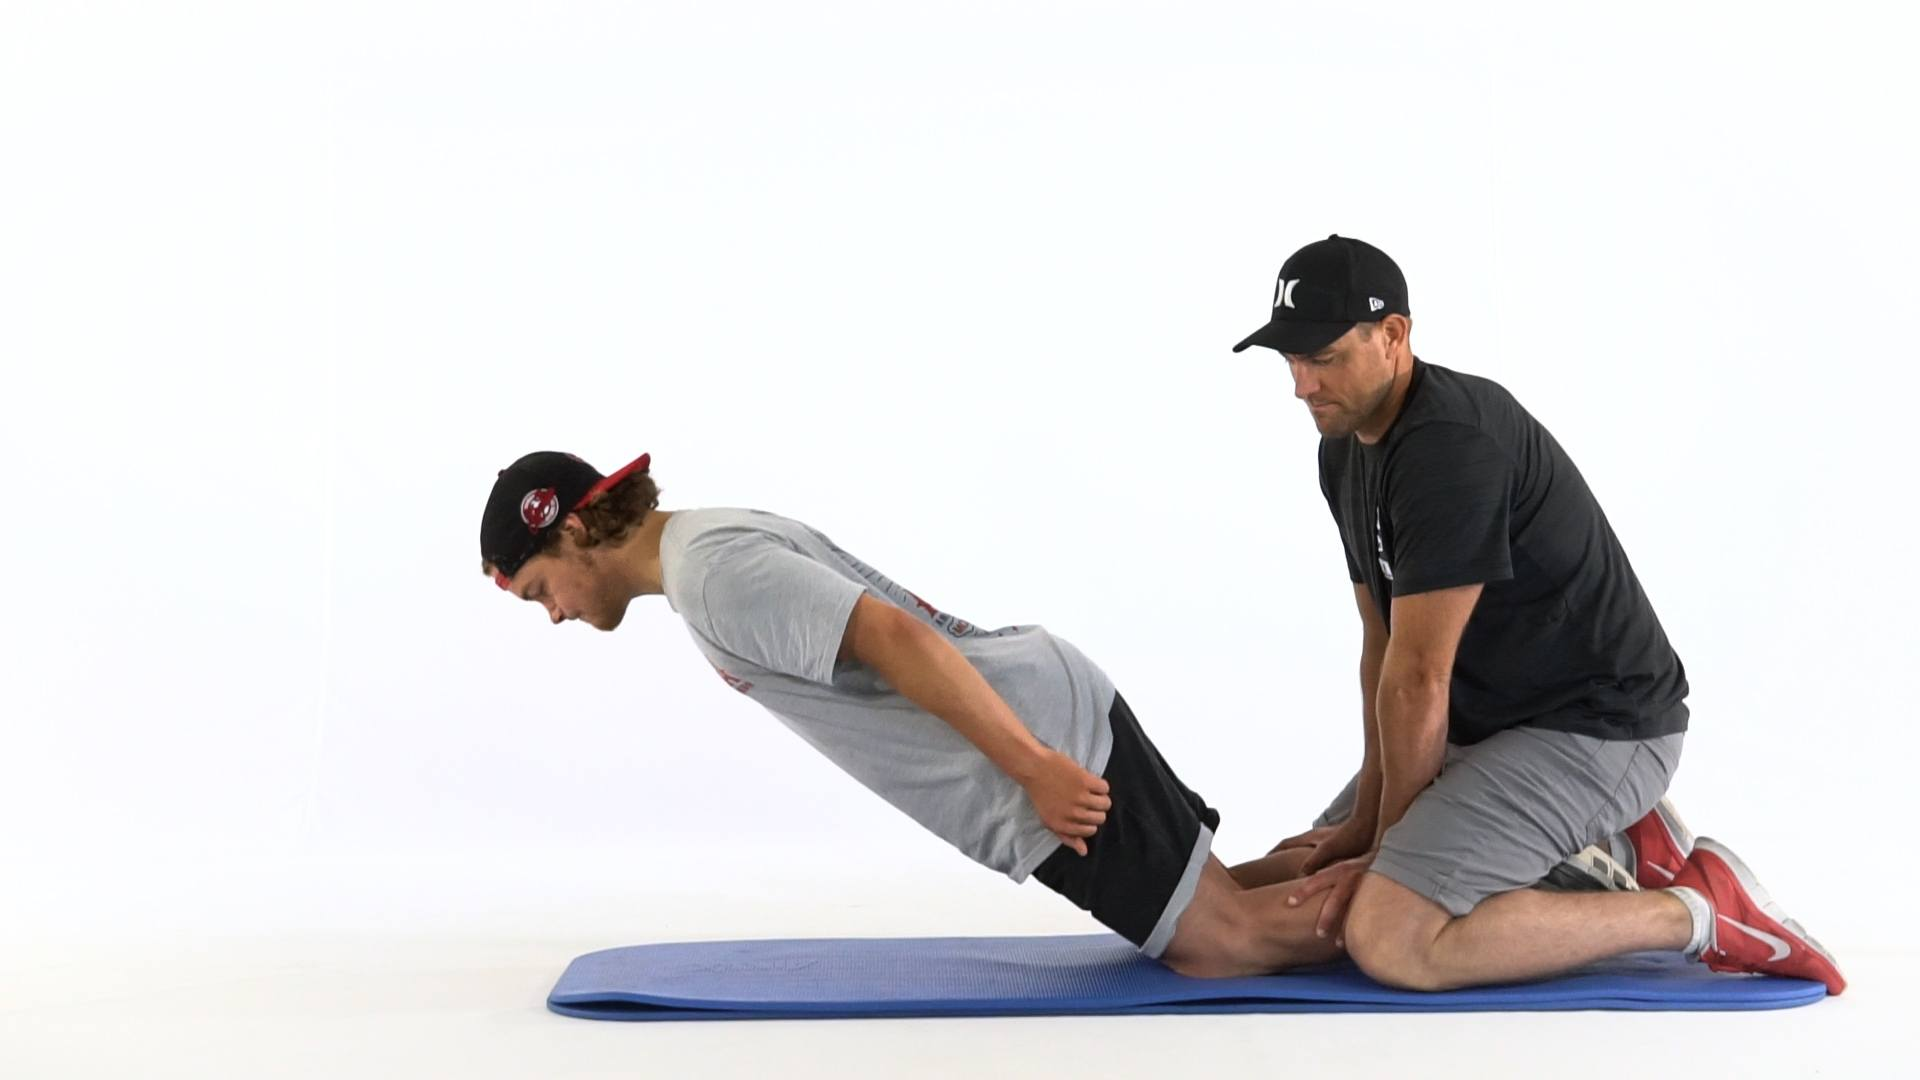 Man doing Nordic curls (natural leg curls); one of the most difficult bodyweight hamstring exercises